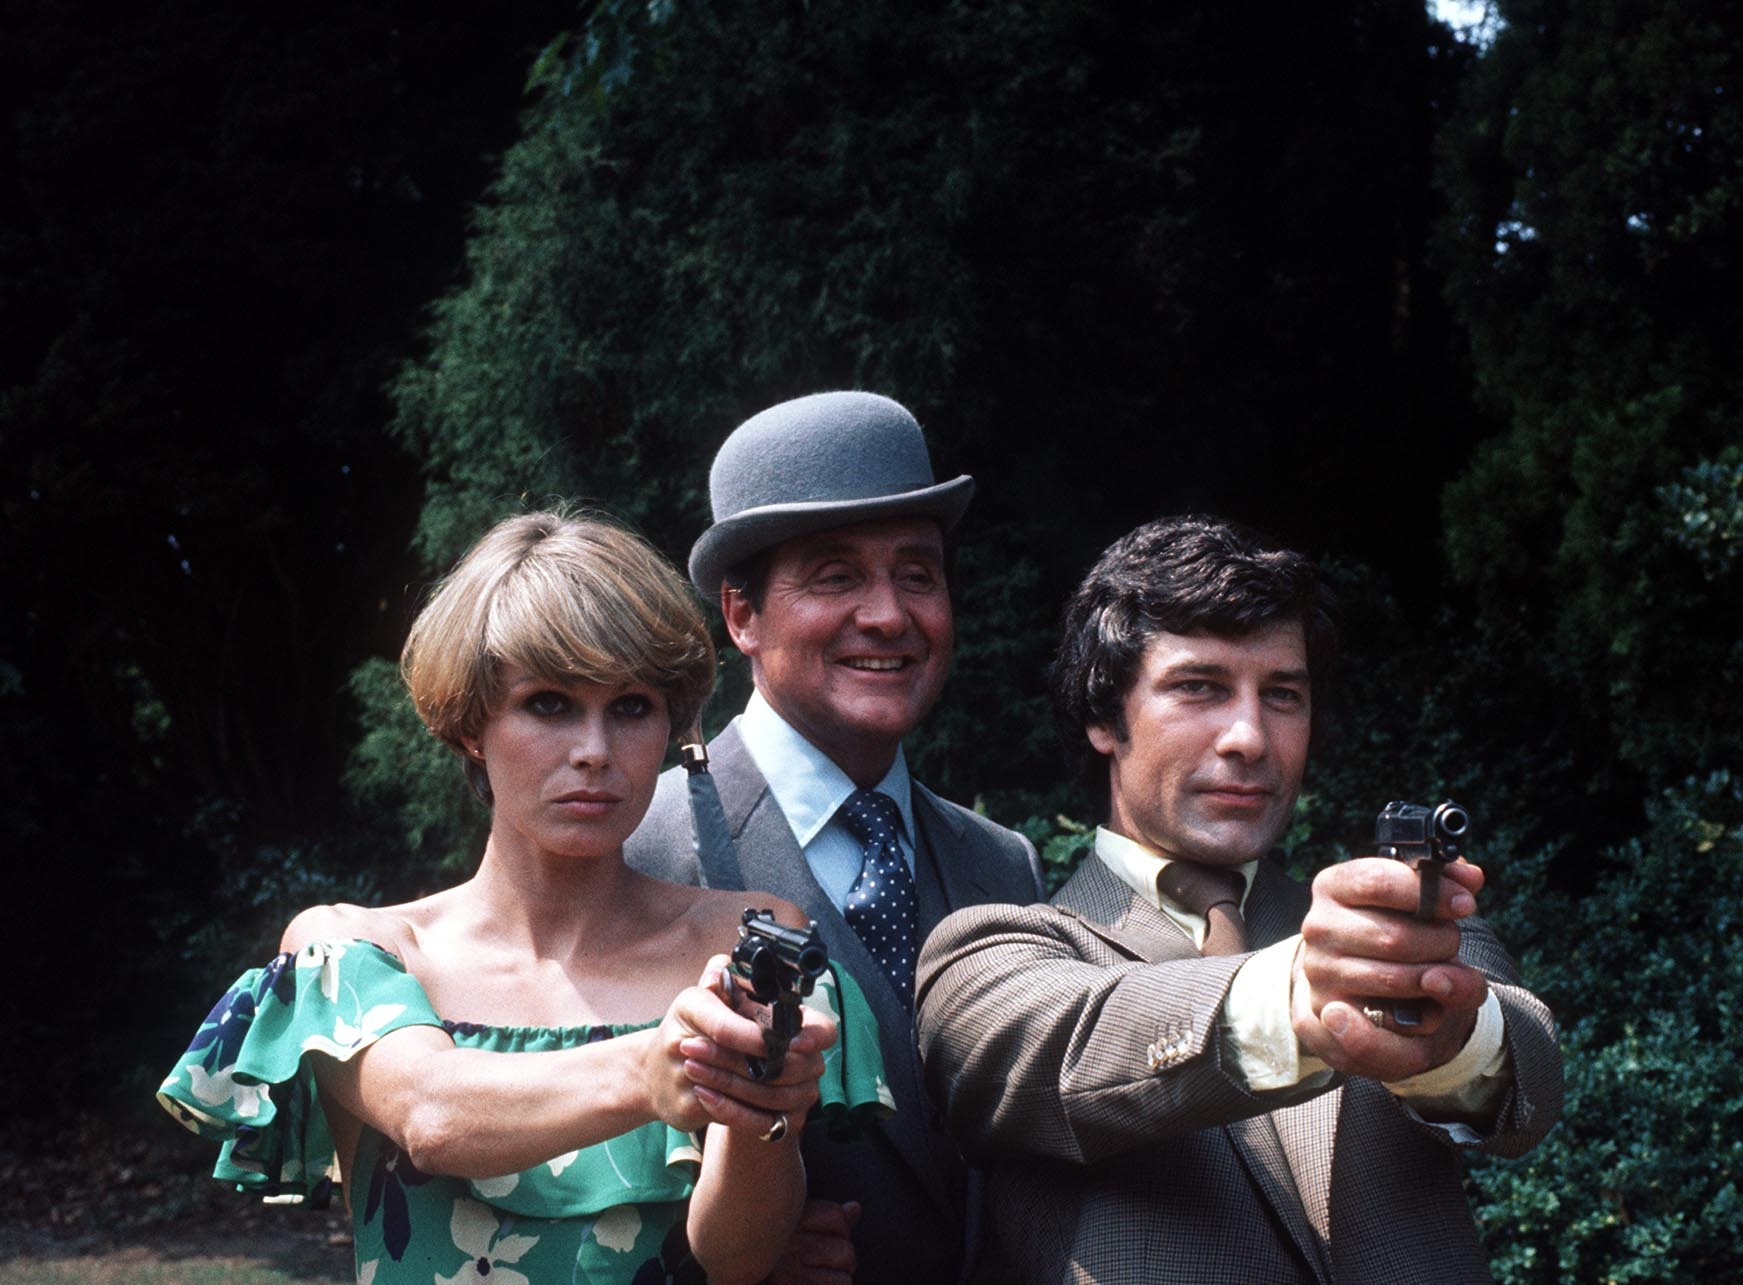 Joanna Lumley as Purdey in The Avengers (PA)